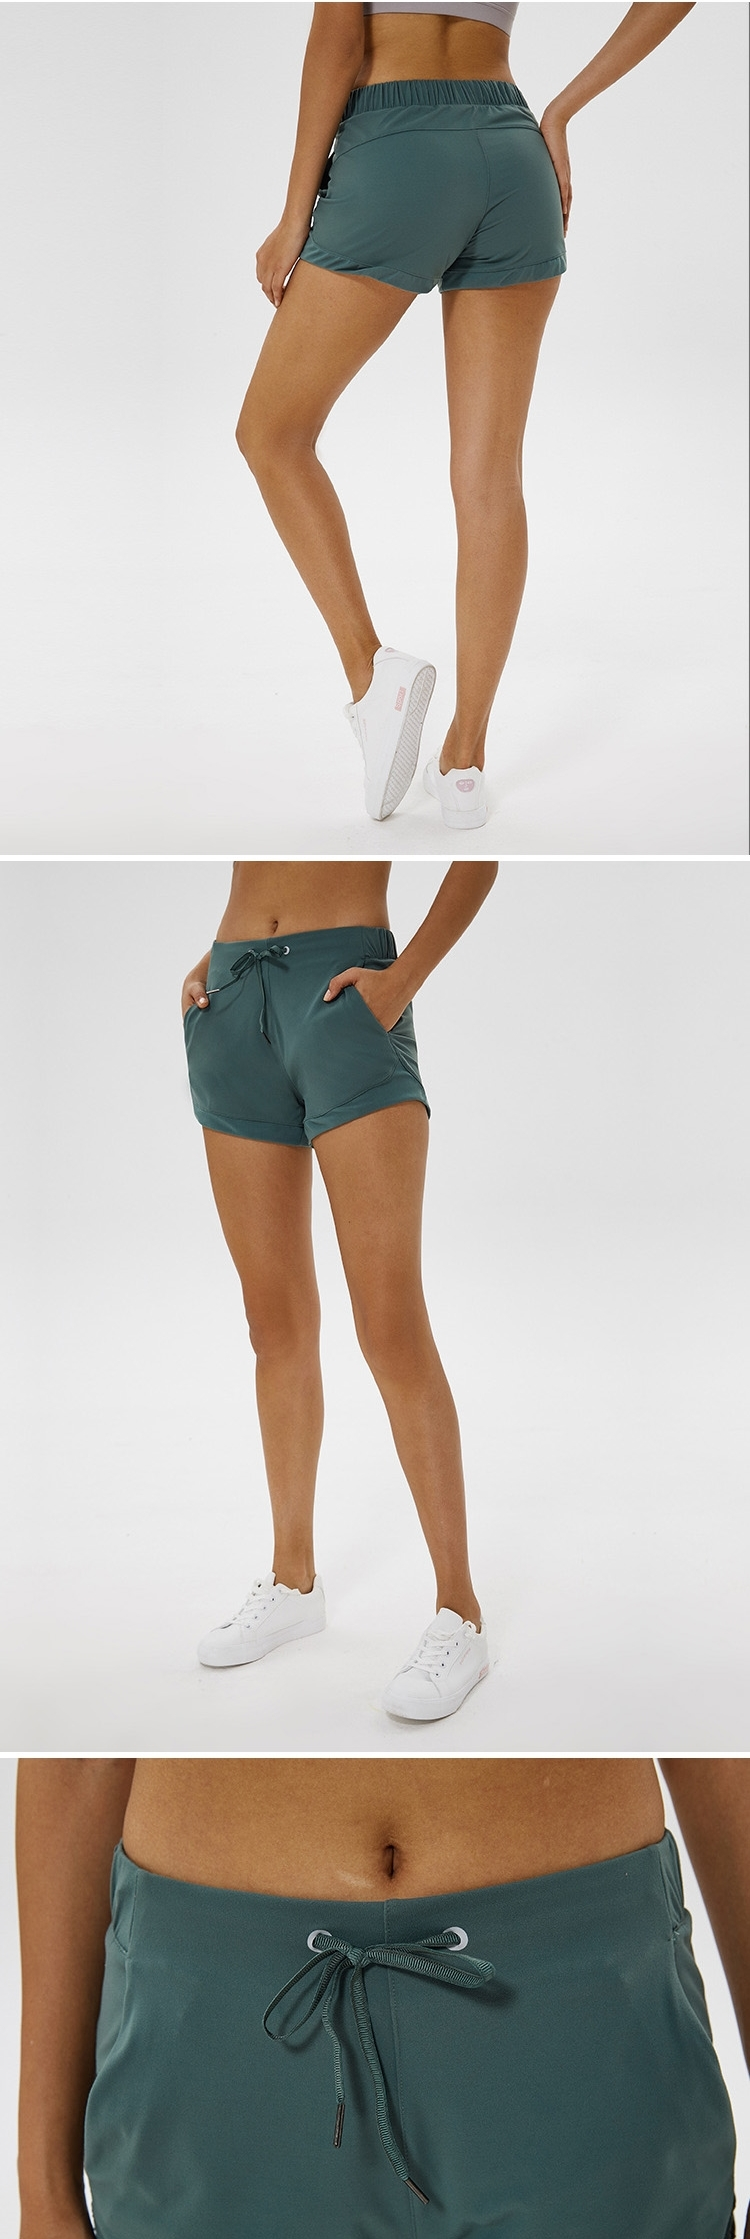 KCOA Factory price stock loose fitness women yoga running workout shorts with pocket